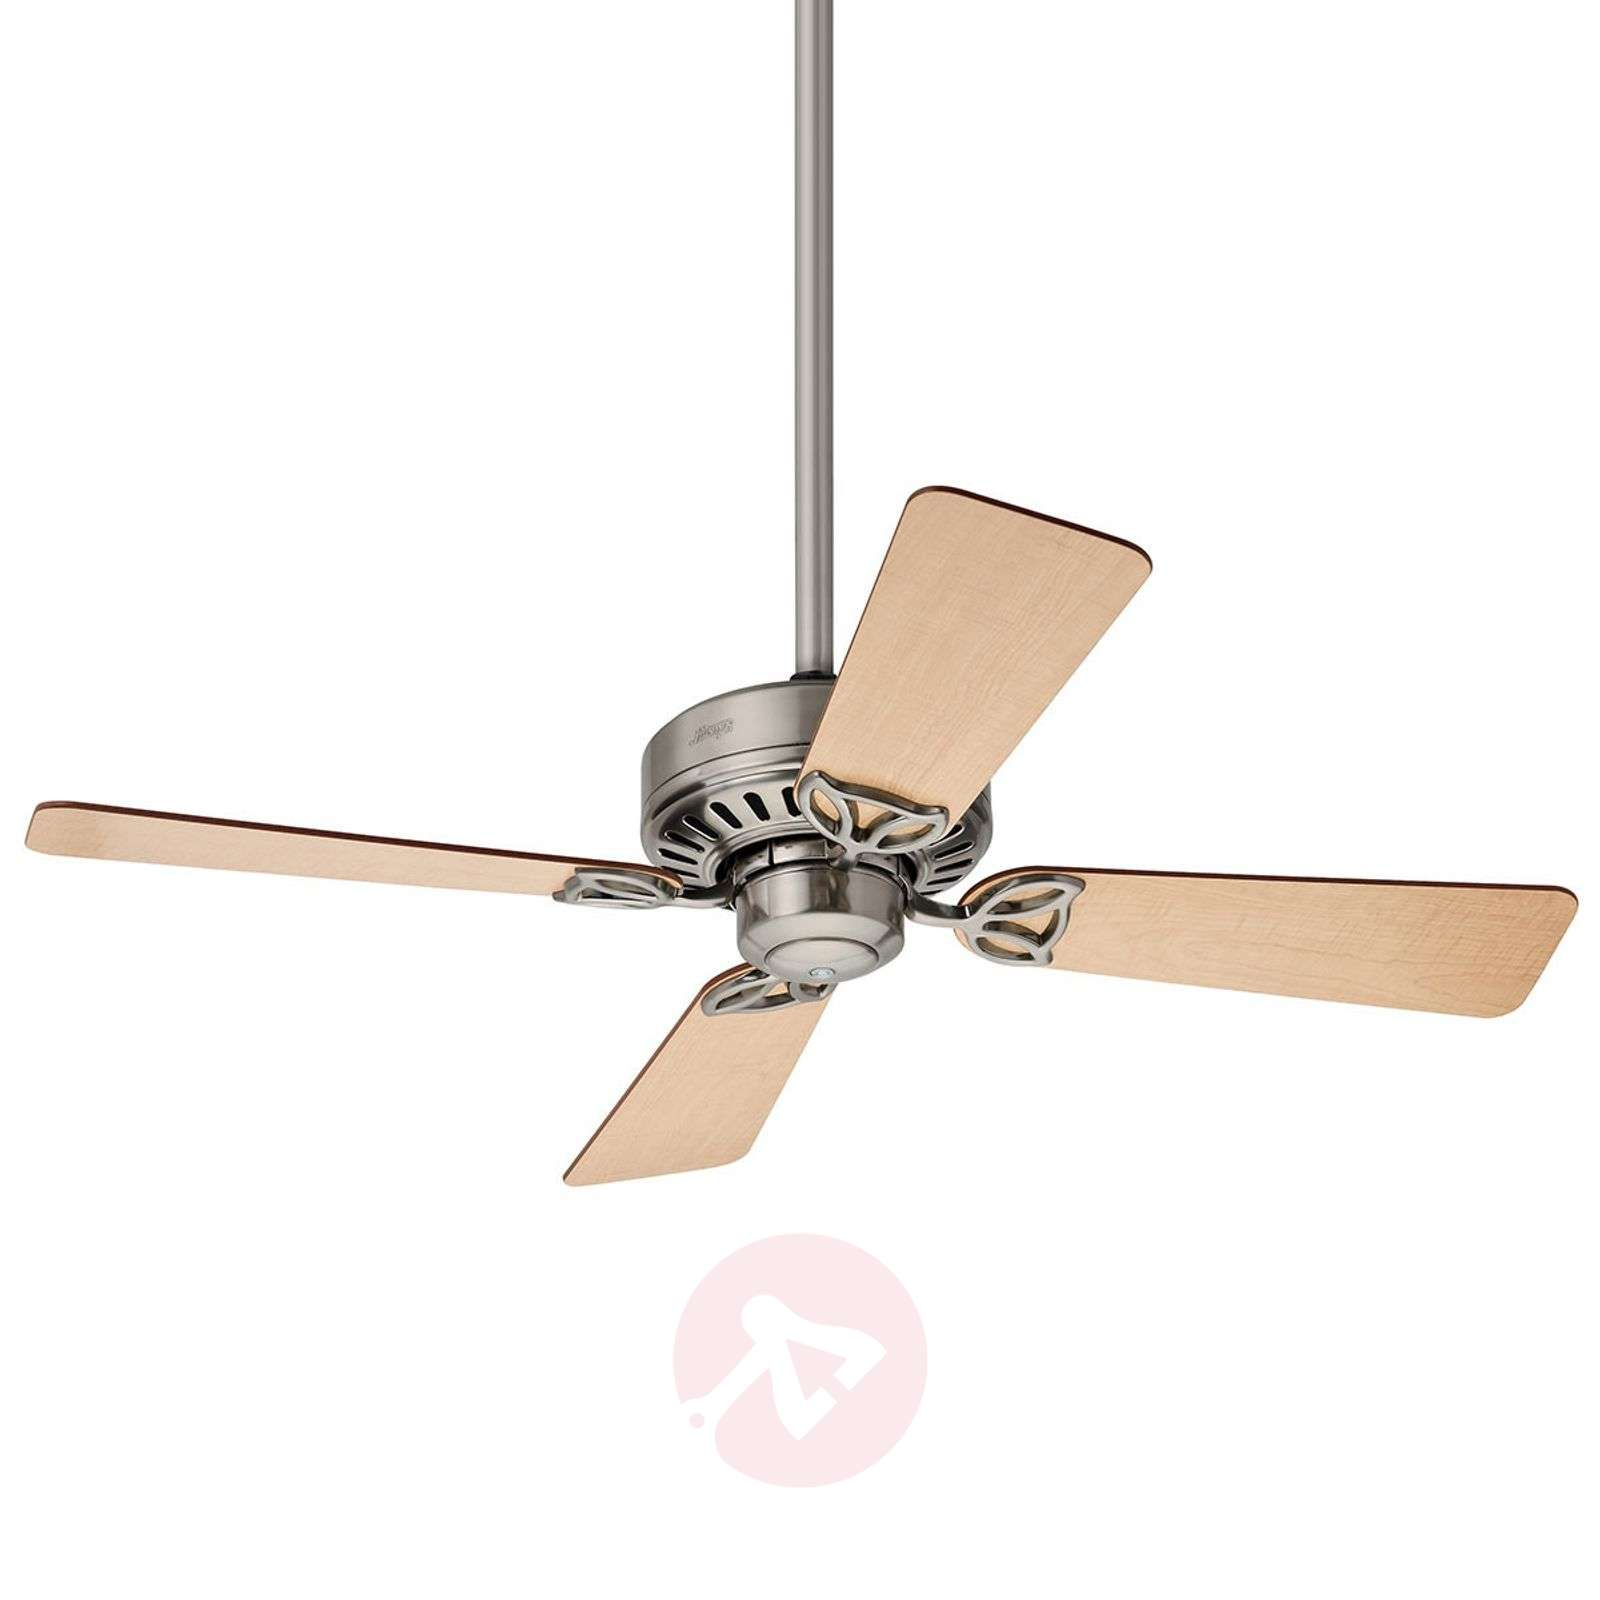 Hunter Bayport ceiling fan with reversible blades-4545001-01